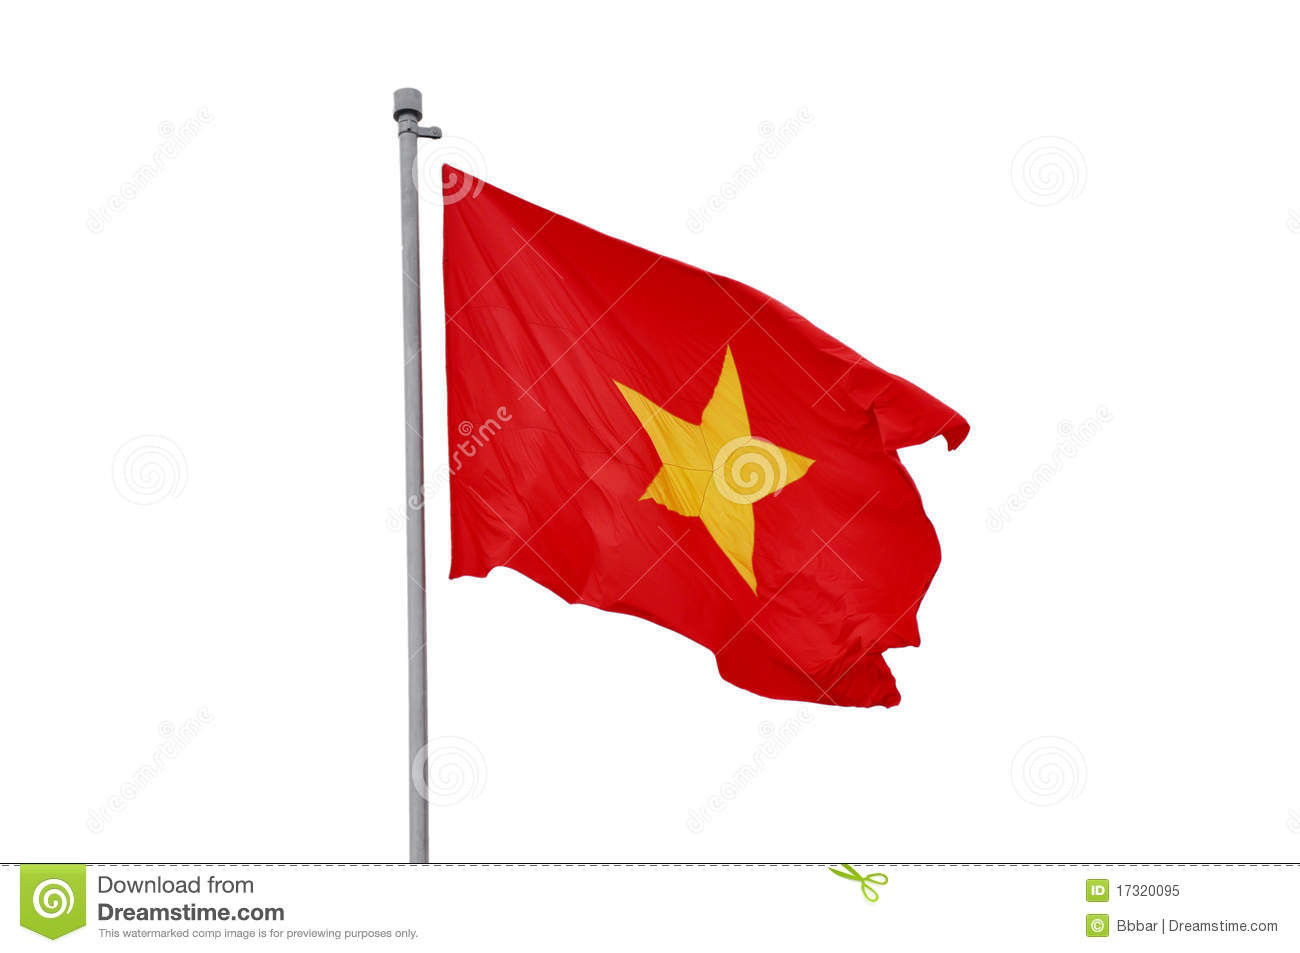 vietnam nationalist identity ccot 2007 annotated ccot rubric: 20 th century formation of national identities note to teachers: this annotated rubric is specifically designed for the college board's ap world history course, but could also be helpful in any world history survey course.